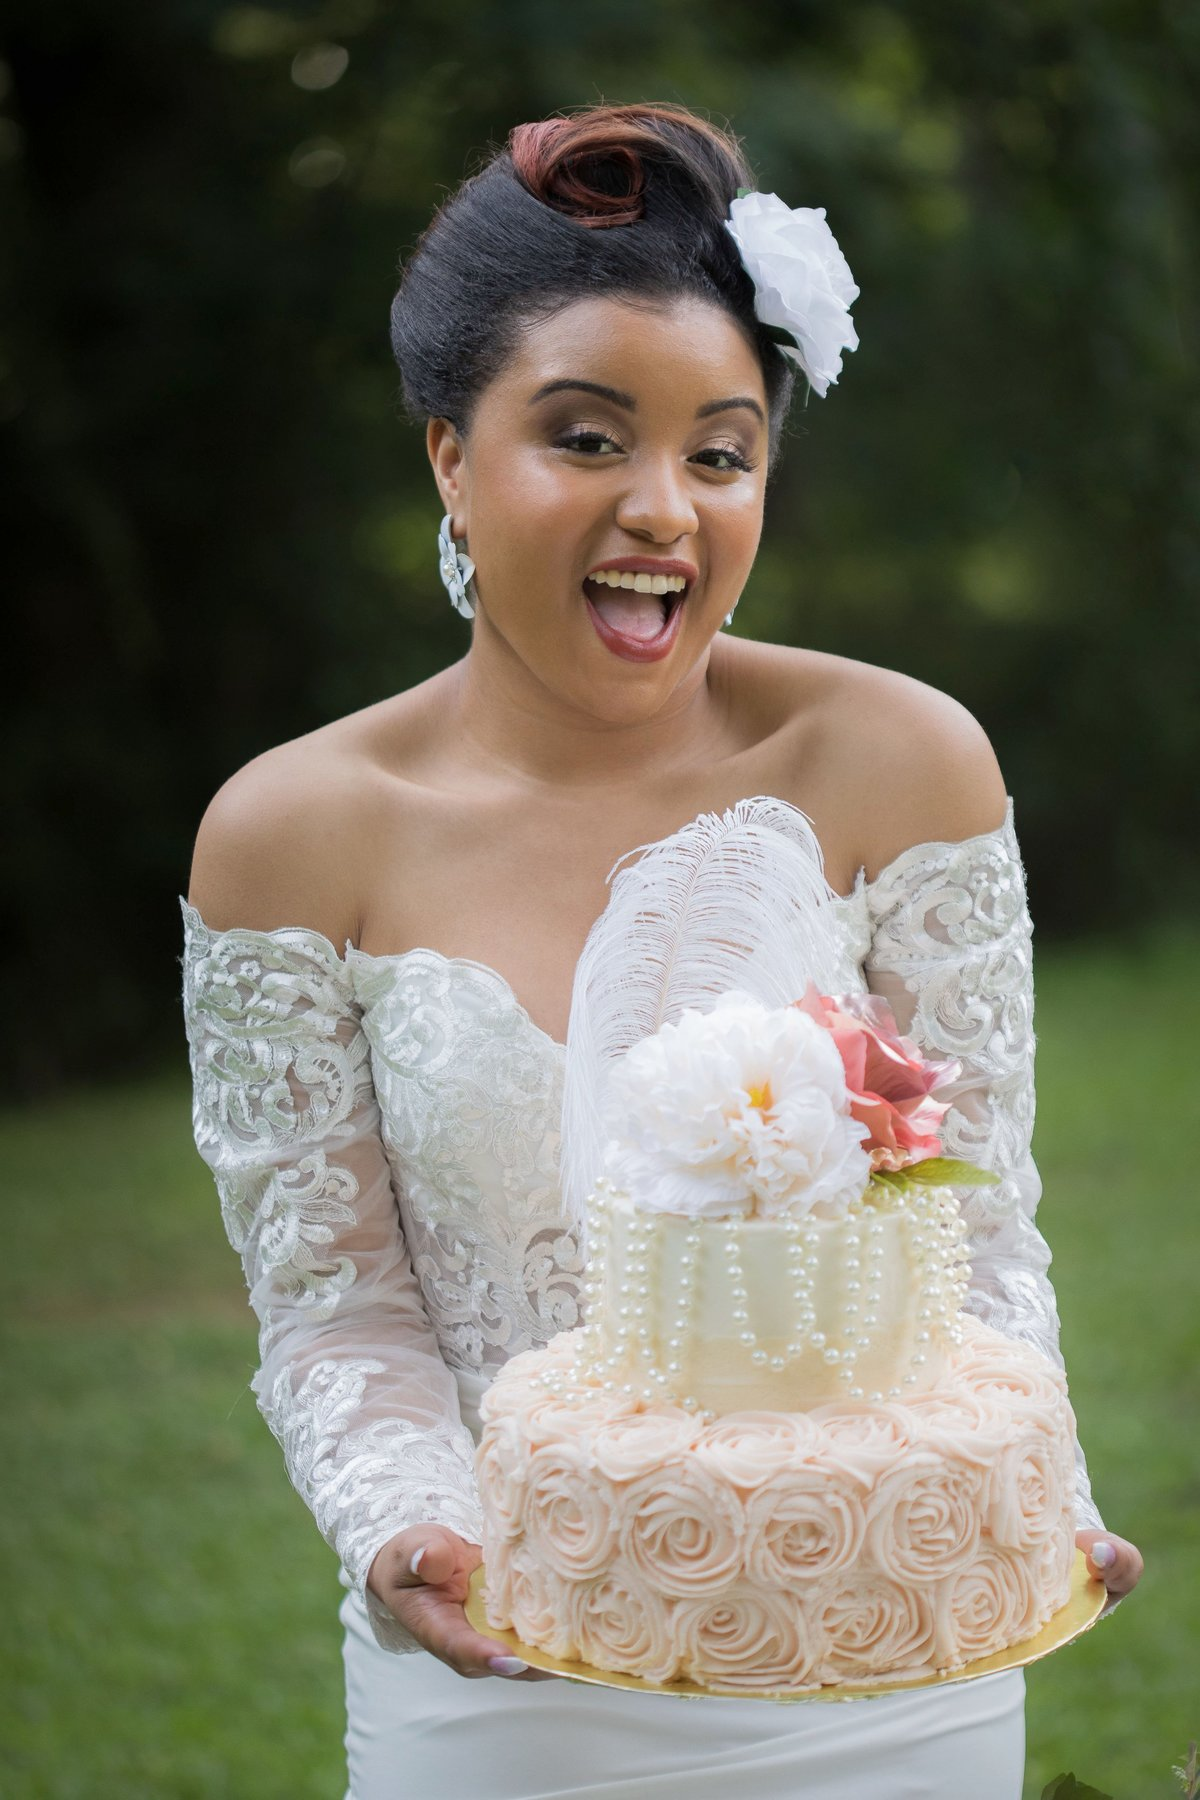 bride holding wedding cake